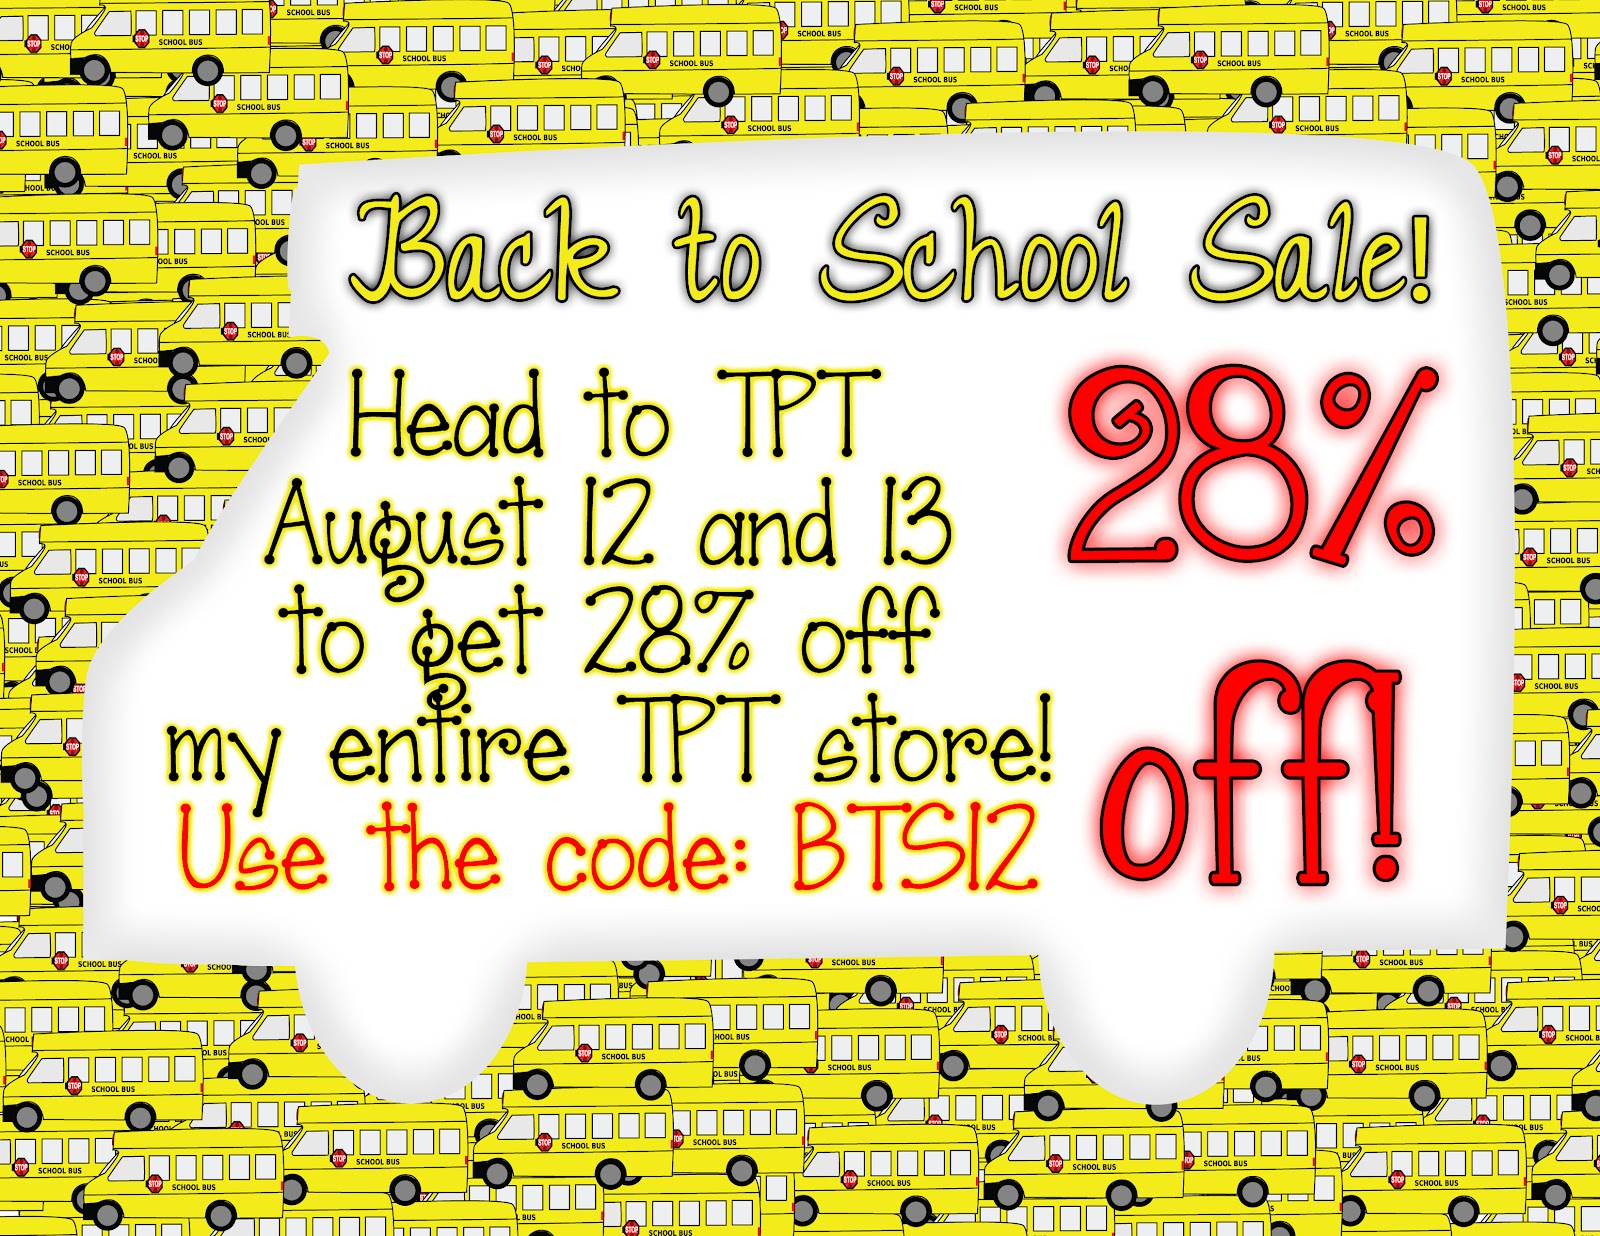 tpt back to school sale 2020